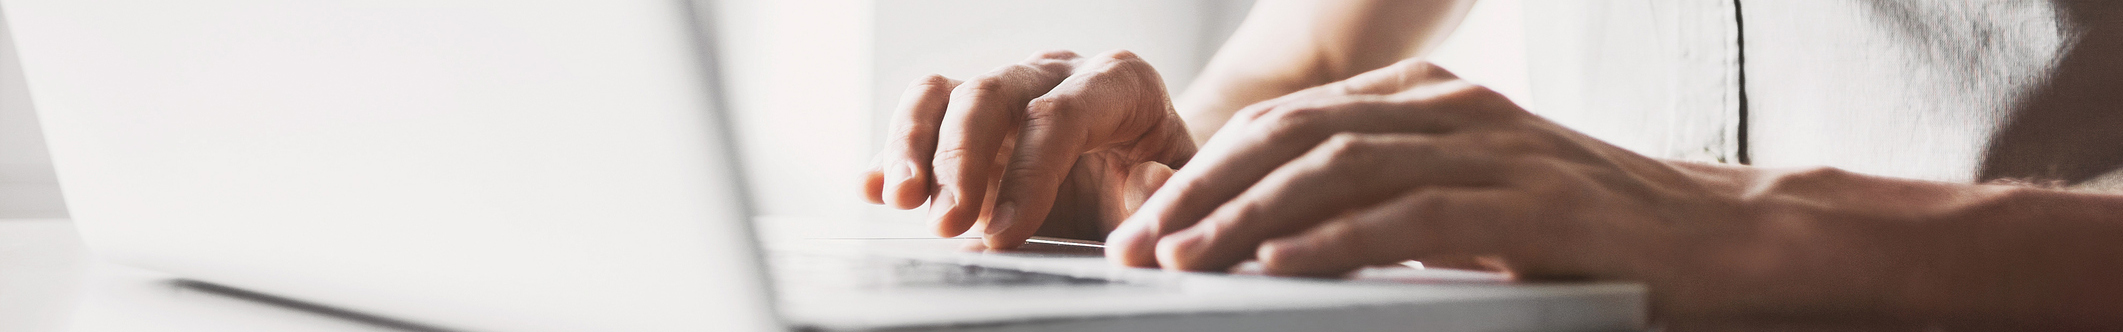 Male hands on laptop keyboard